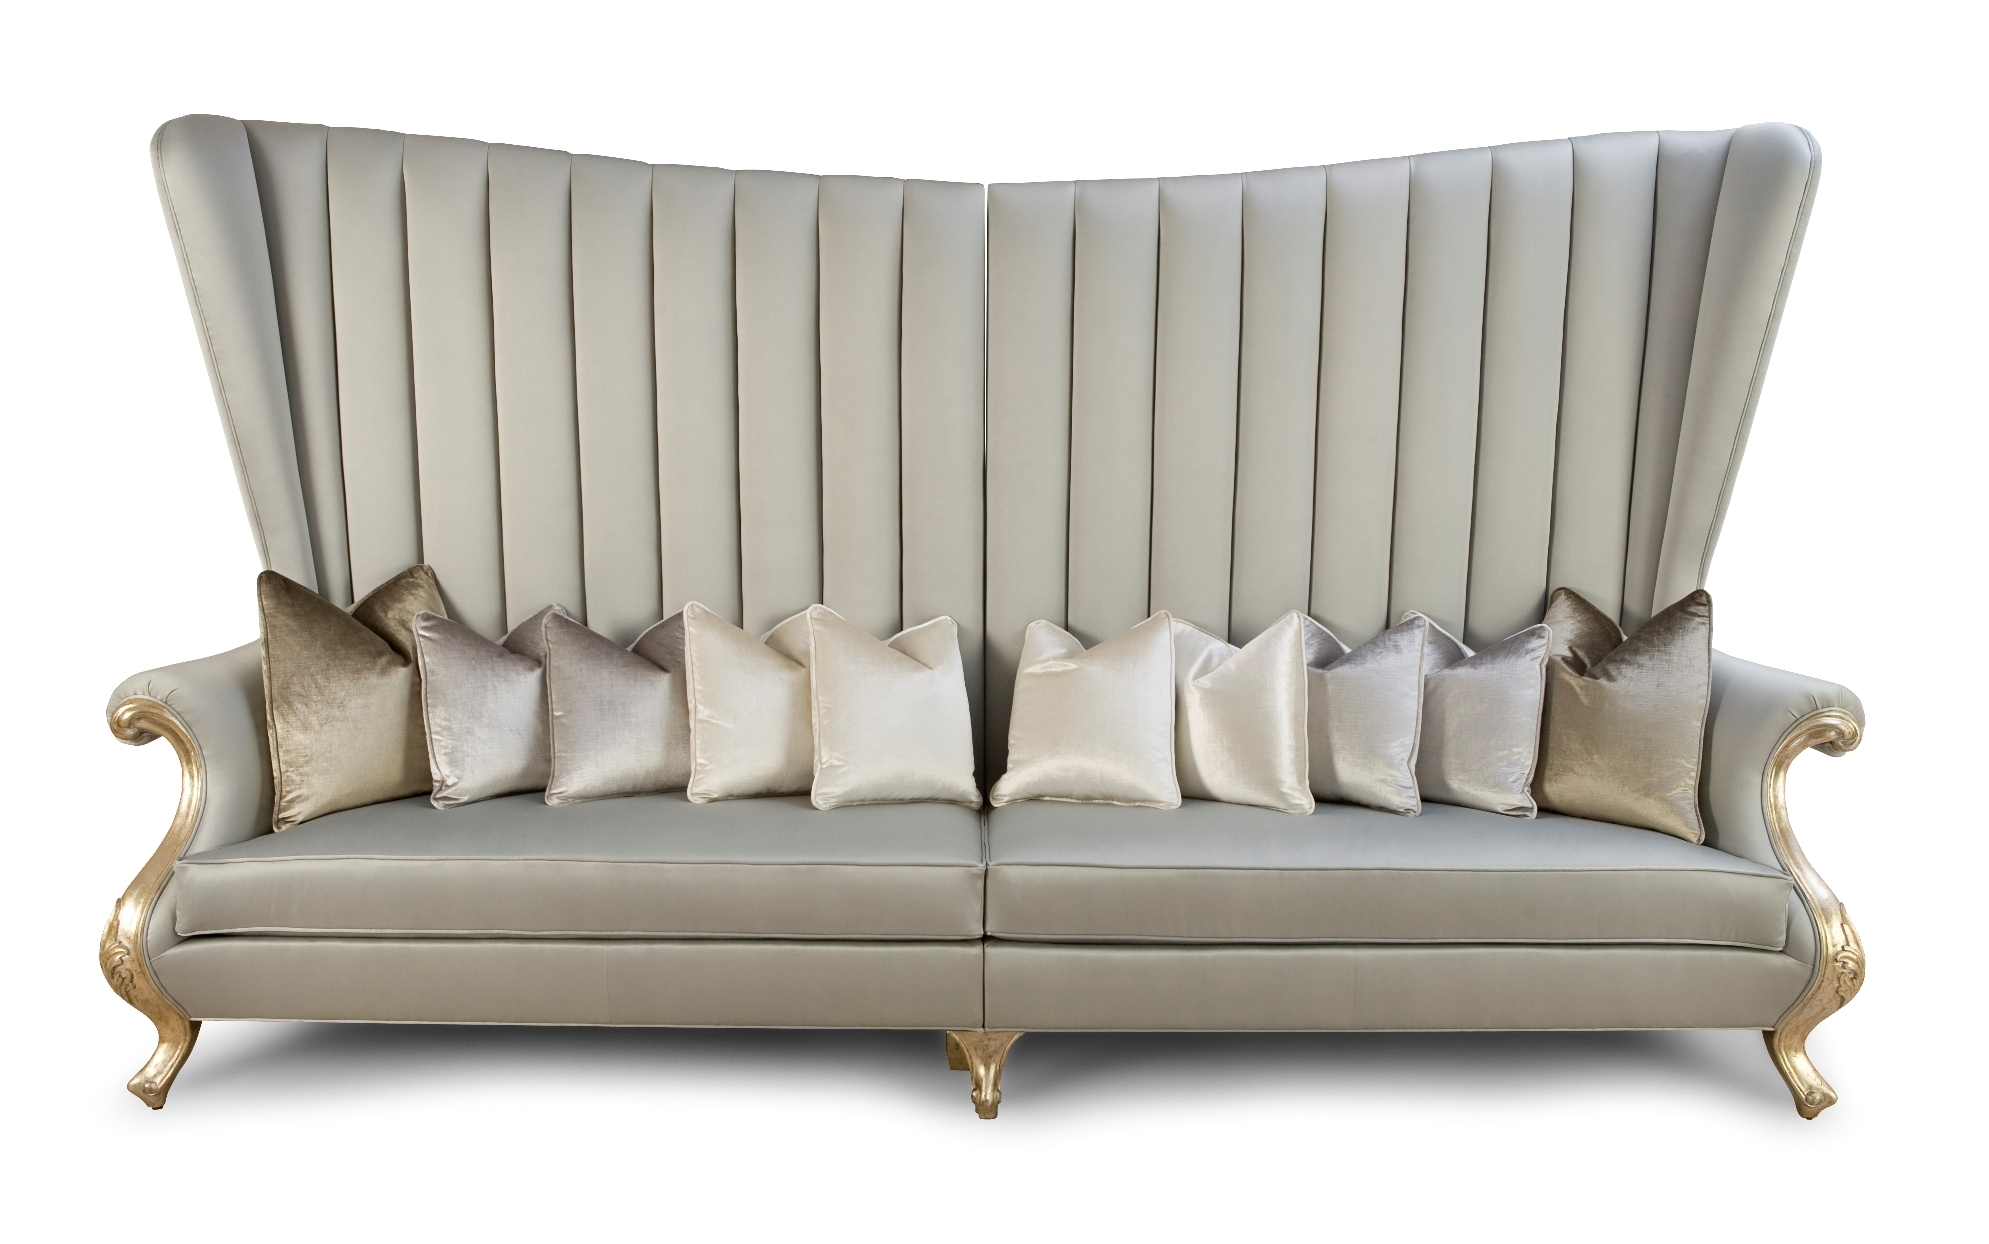 High Back Sofa, Christopher Guy | 01椅 | Pinterest | Christopher Guy For Sectional Sofas With High Backs (View 7 of 10)